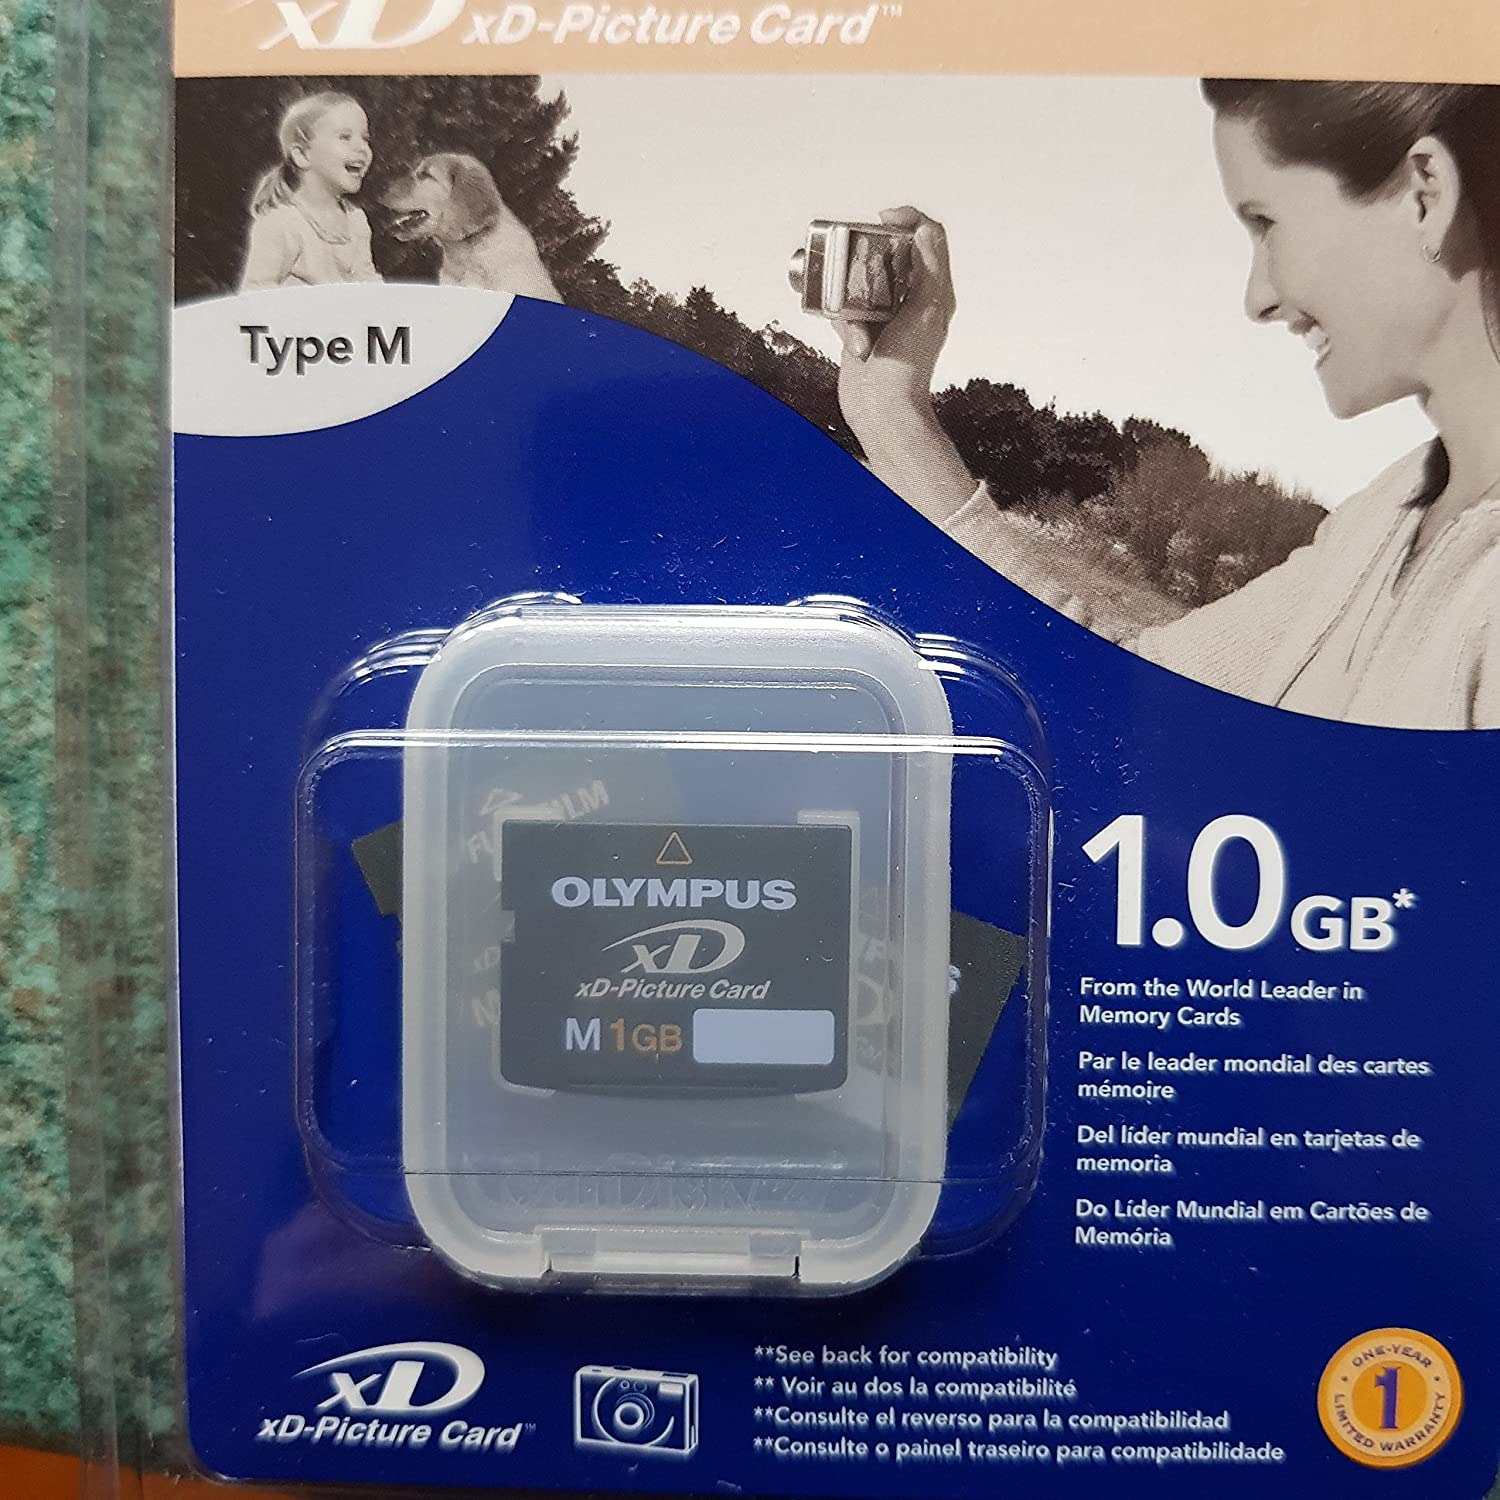 Olympus 1gb Xd Type M Picture Card With Panorama Computers Accessories